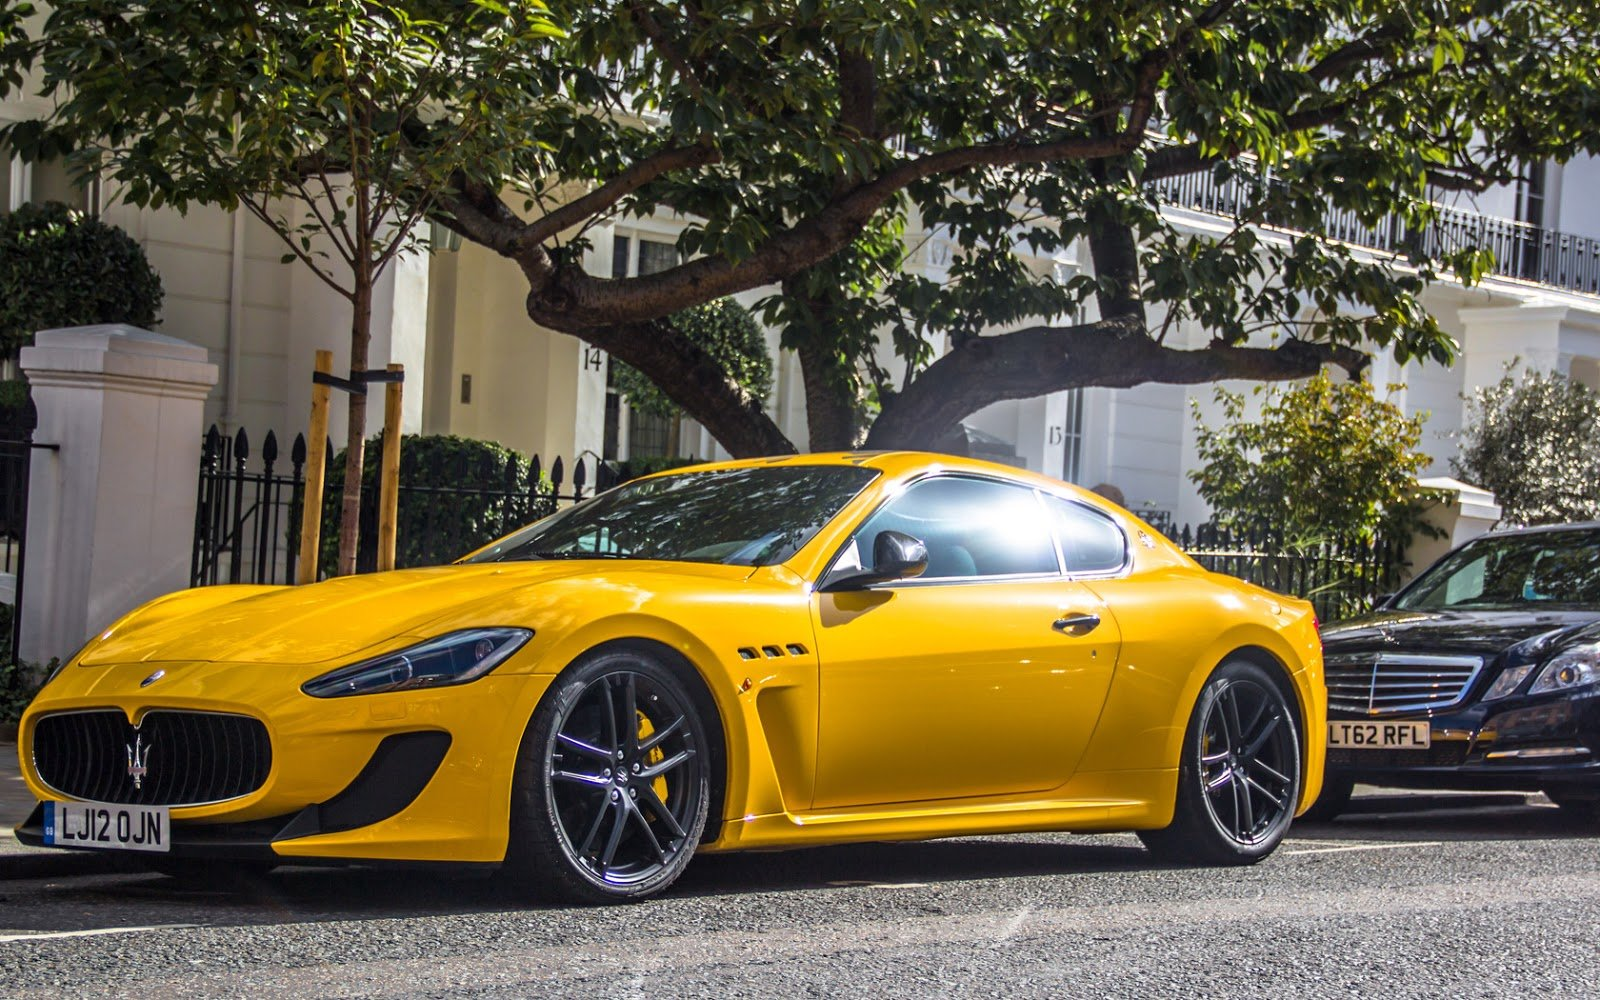 Latest Maserati Granturismo S 60 Wallpapers Cars Wallpapers Hd Free Download